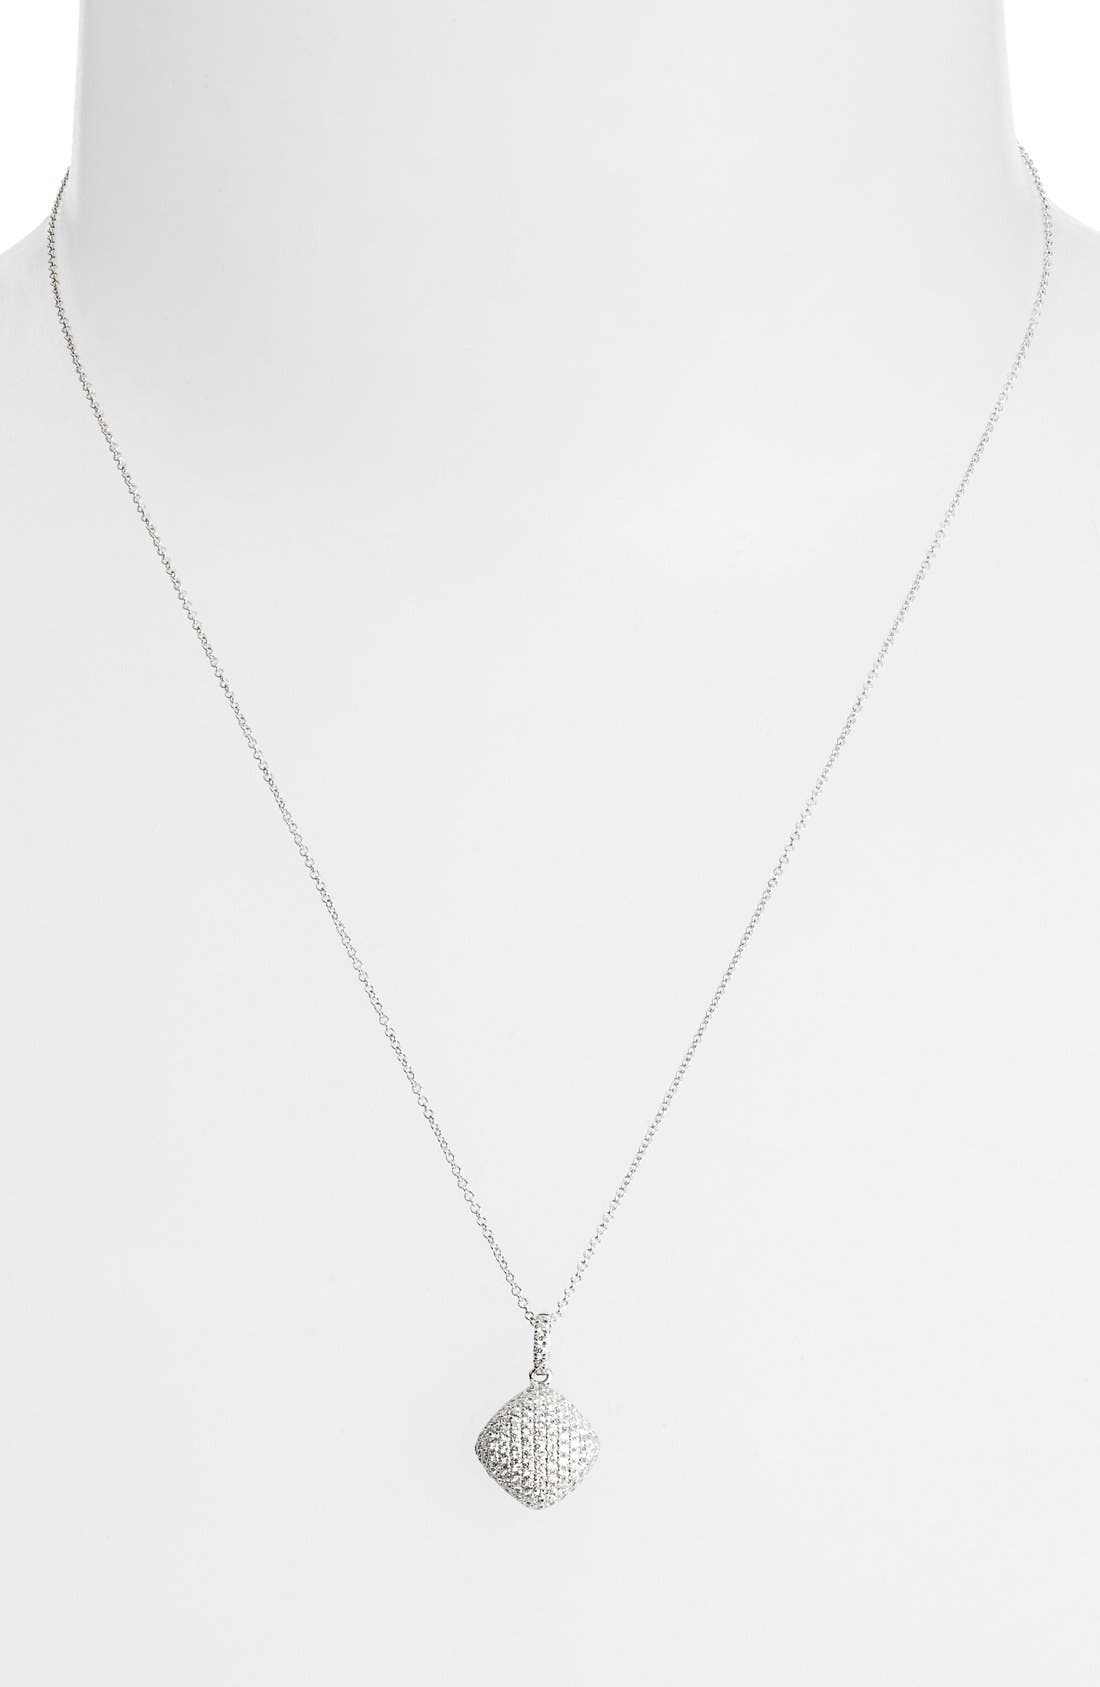 BONY LEVY Pavé Diamond Pendant Necklace